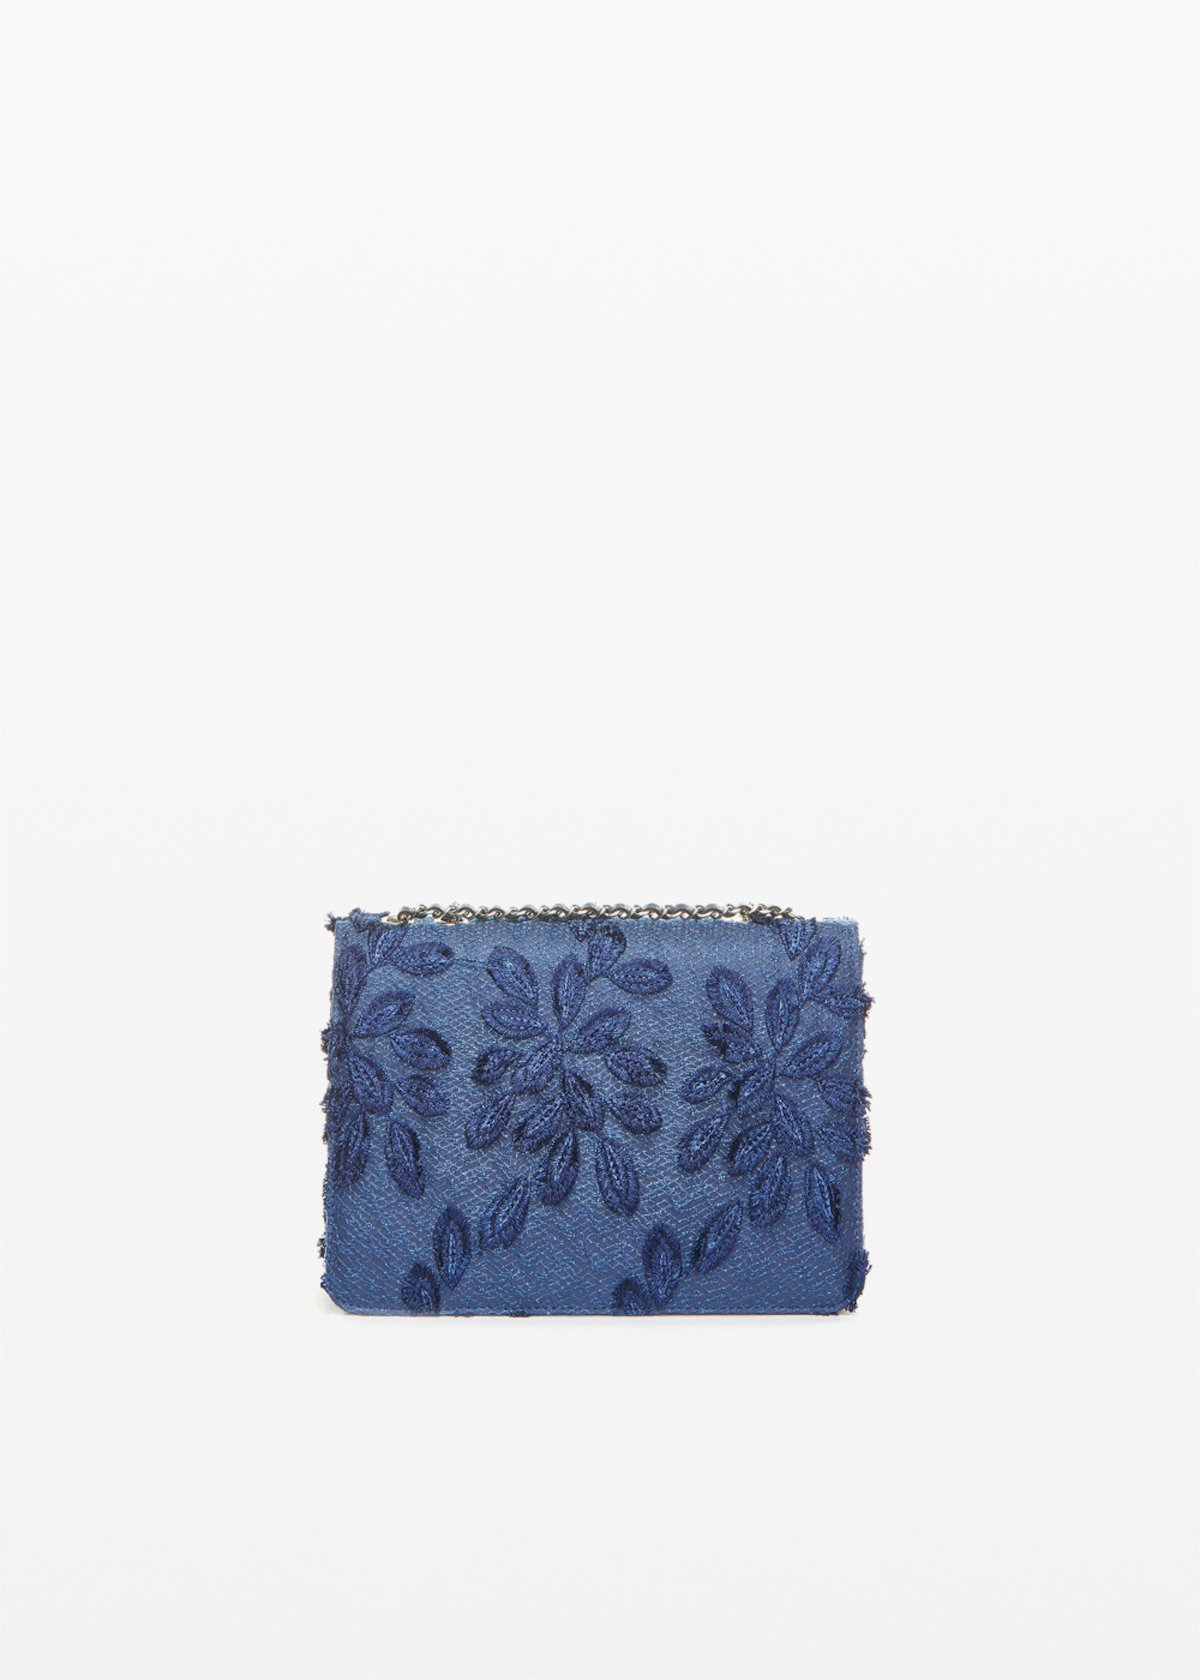 Fede leaf rigid clutch bag with shoulder strap - Dark Blue - Woman